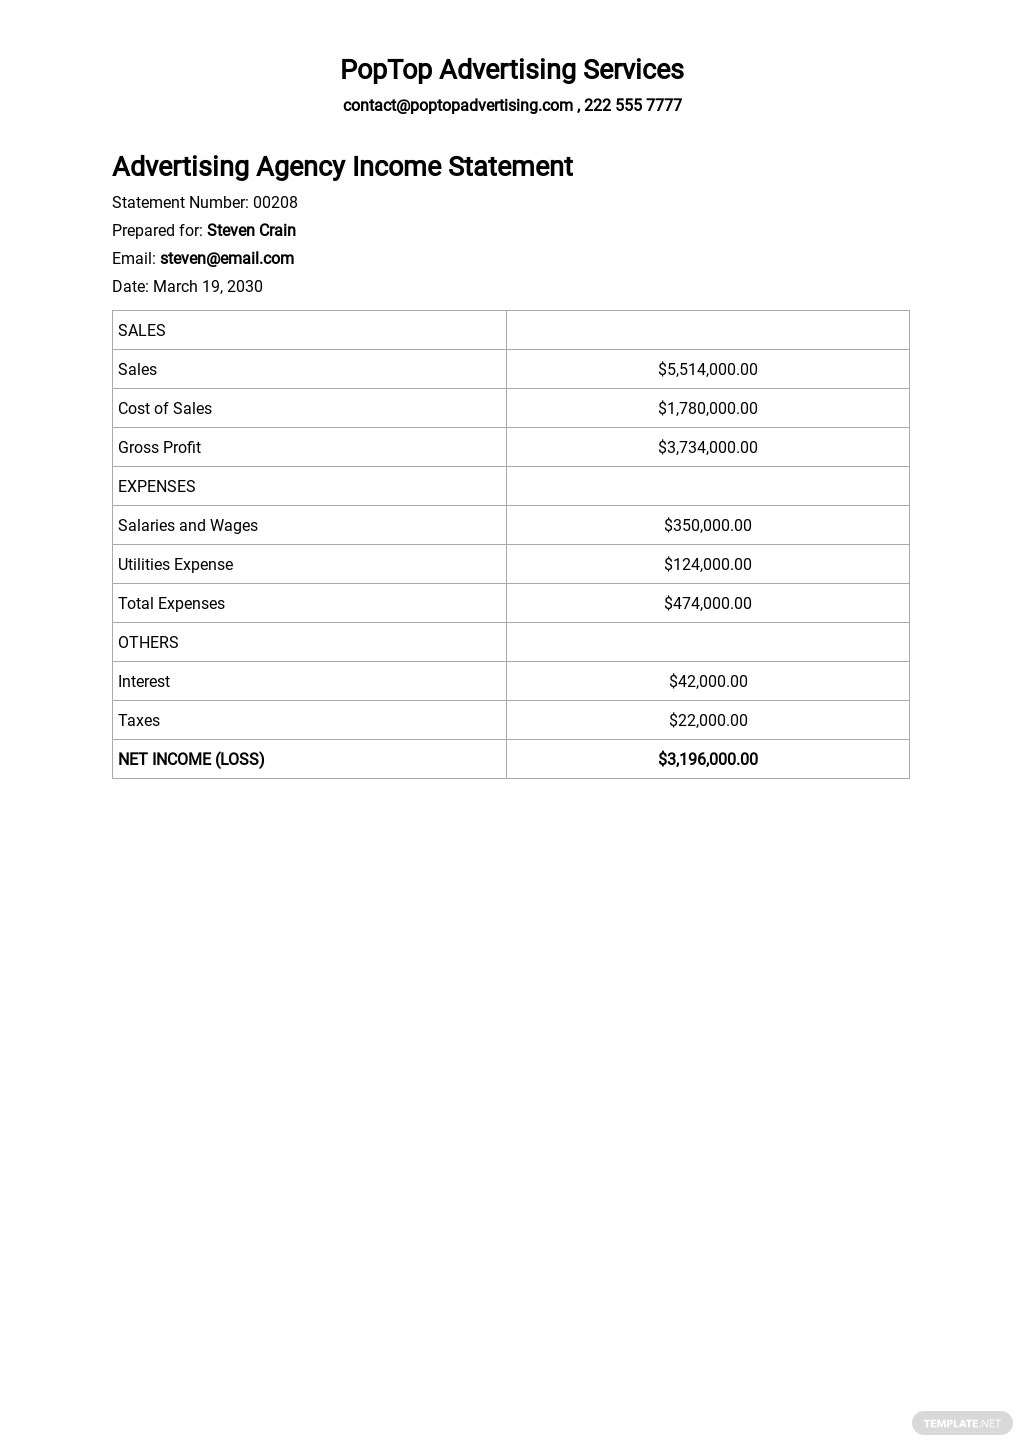 Advertising Agency Income Statement template